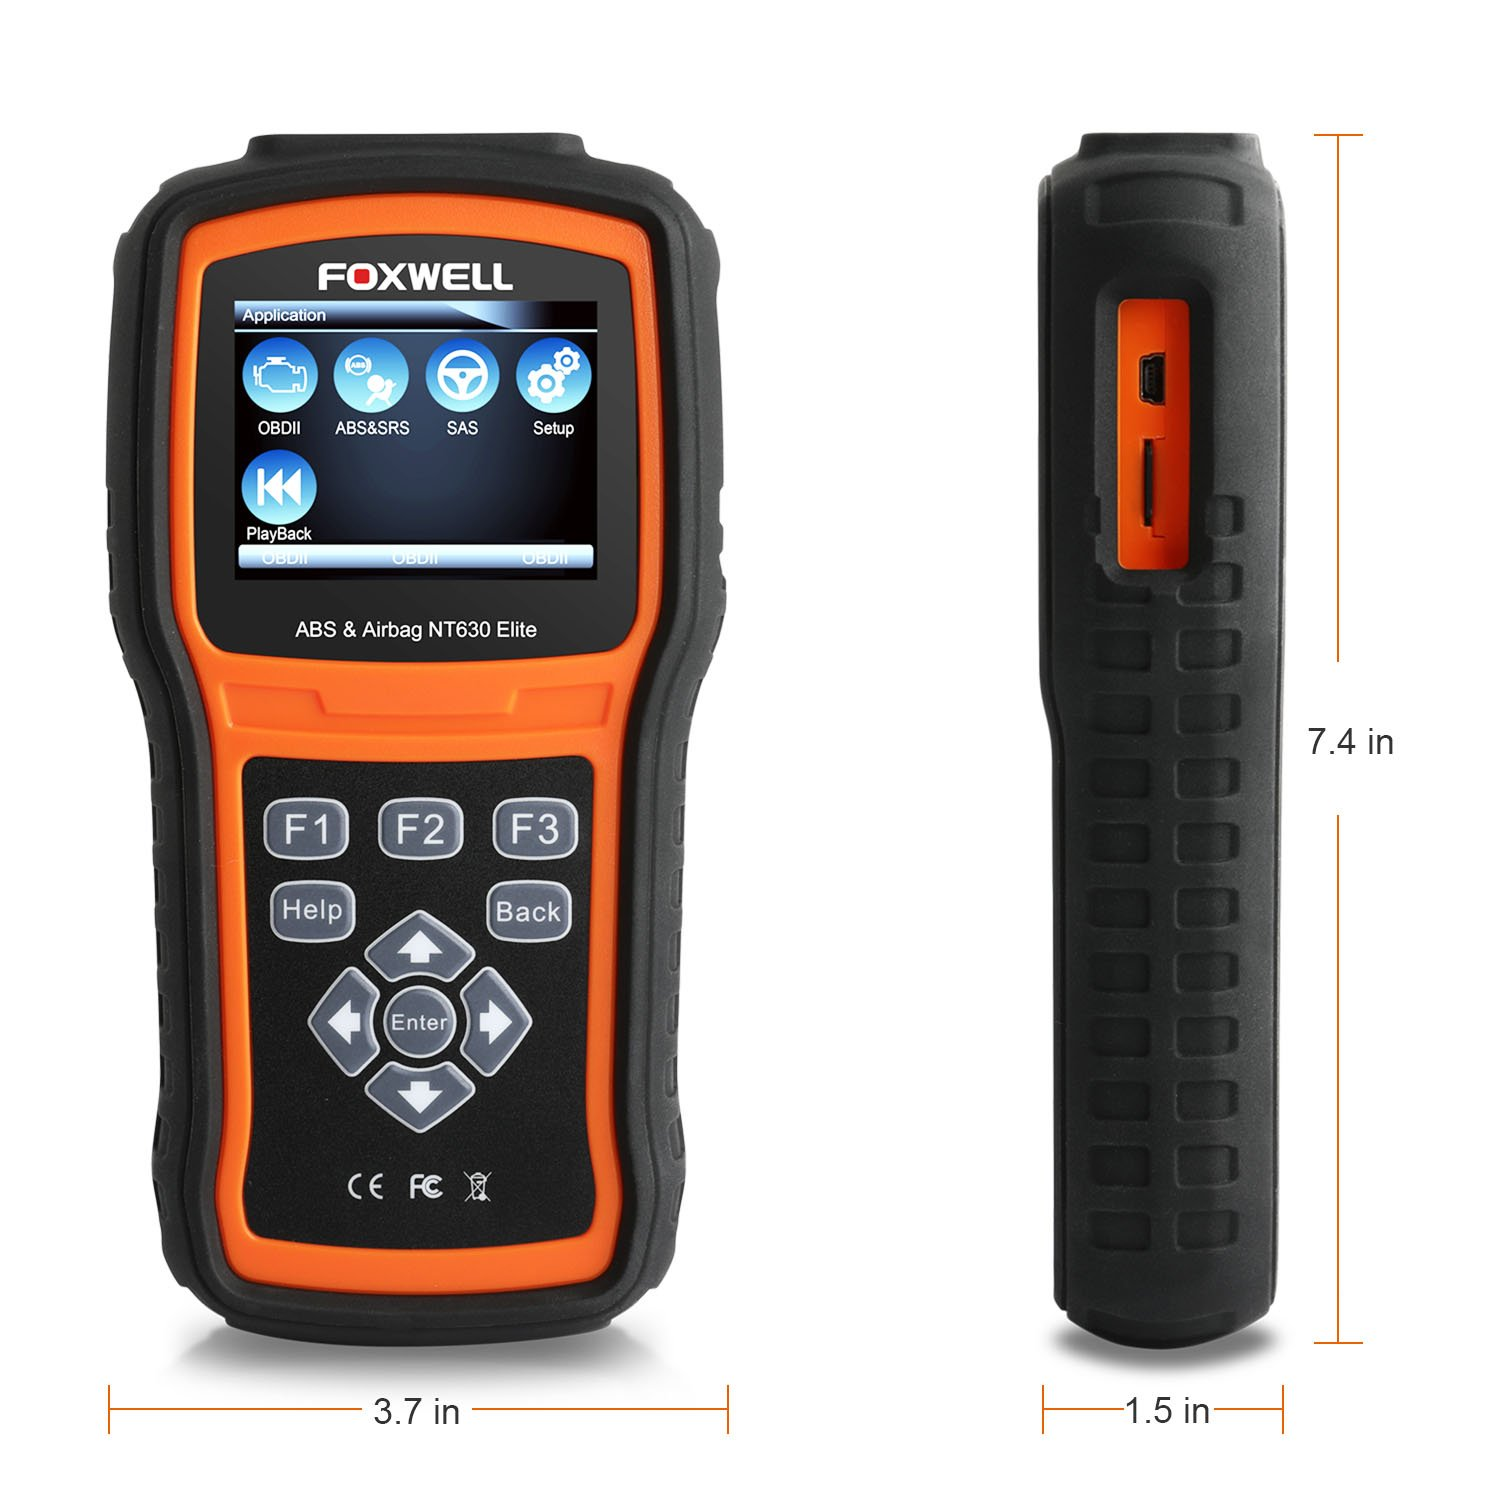 FOXWELL NT630 Elite OBD2 Scanner ABS SRS Code Reader Automotive OBD II ABS Airbag Diagnostic and Active Test Scan Tool by FOXWELL (Image #8)